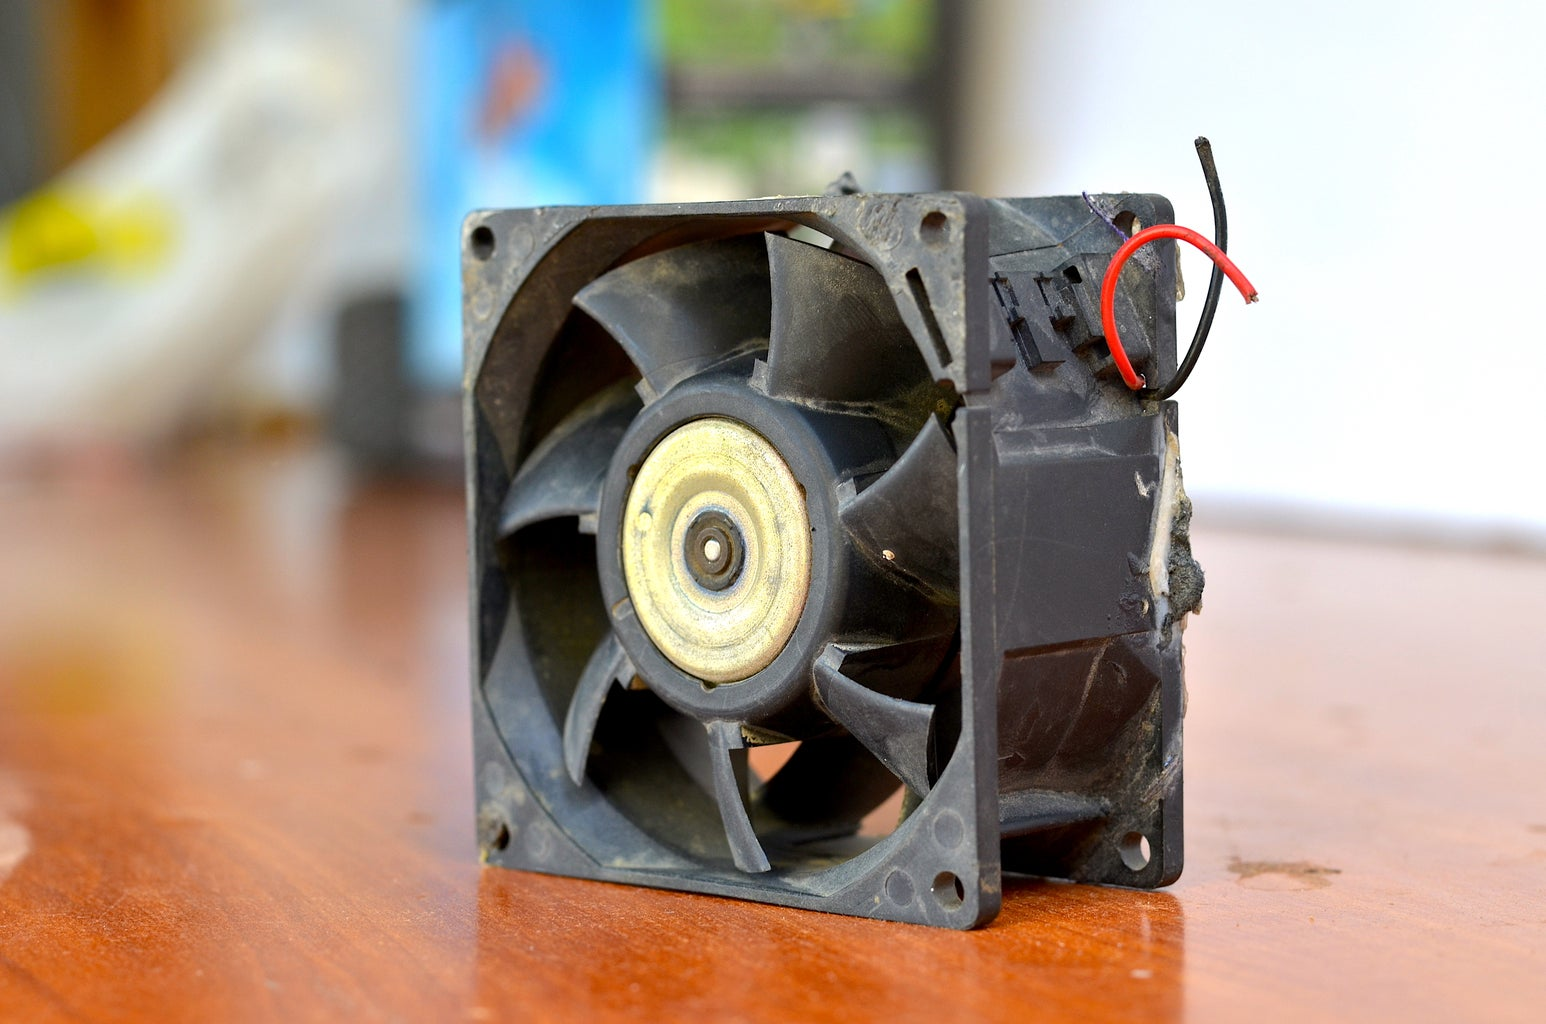 Extracting the Brushless Motor